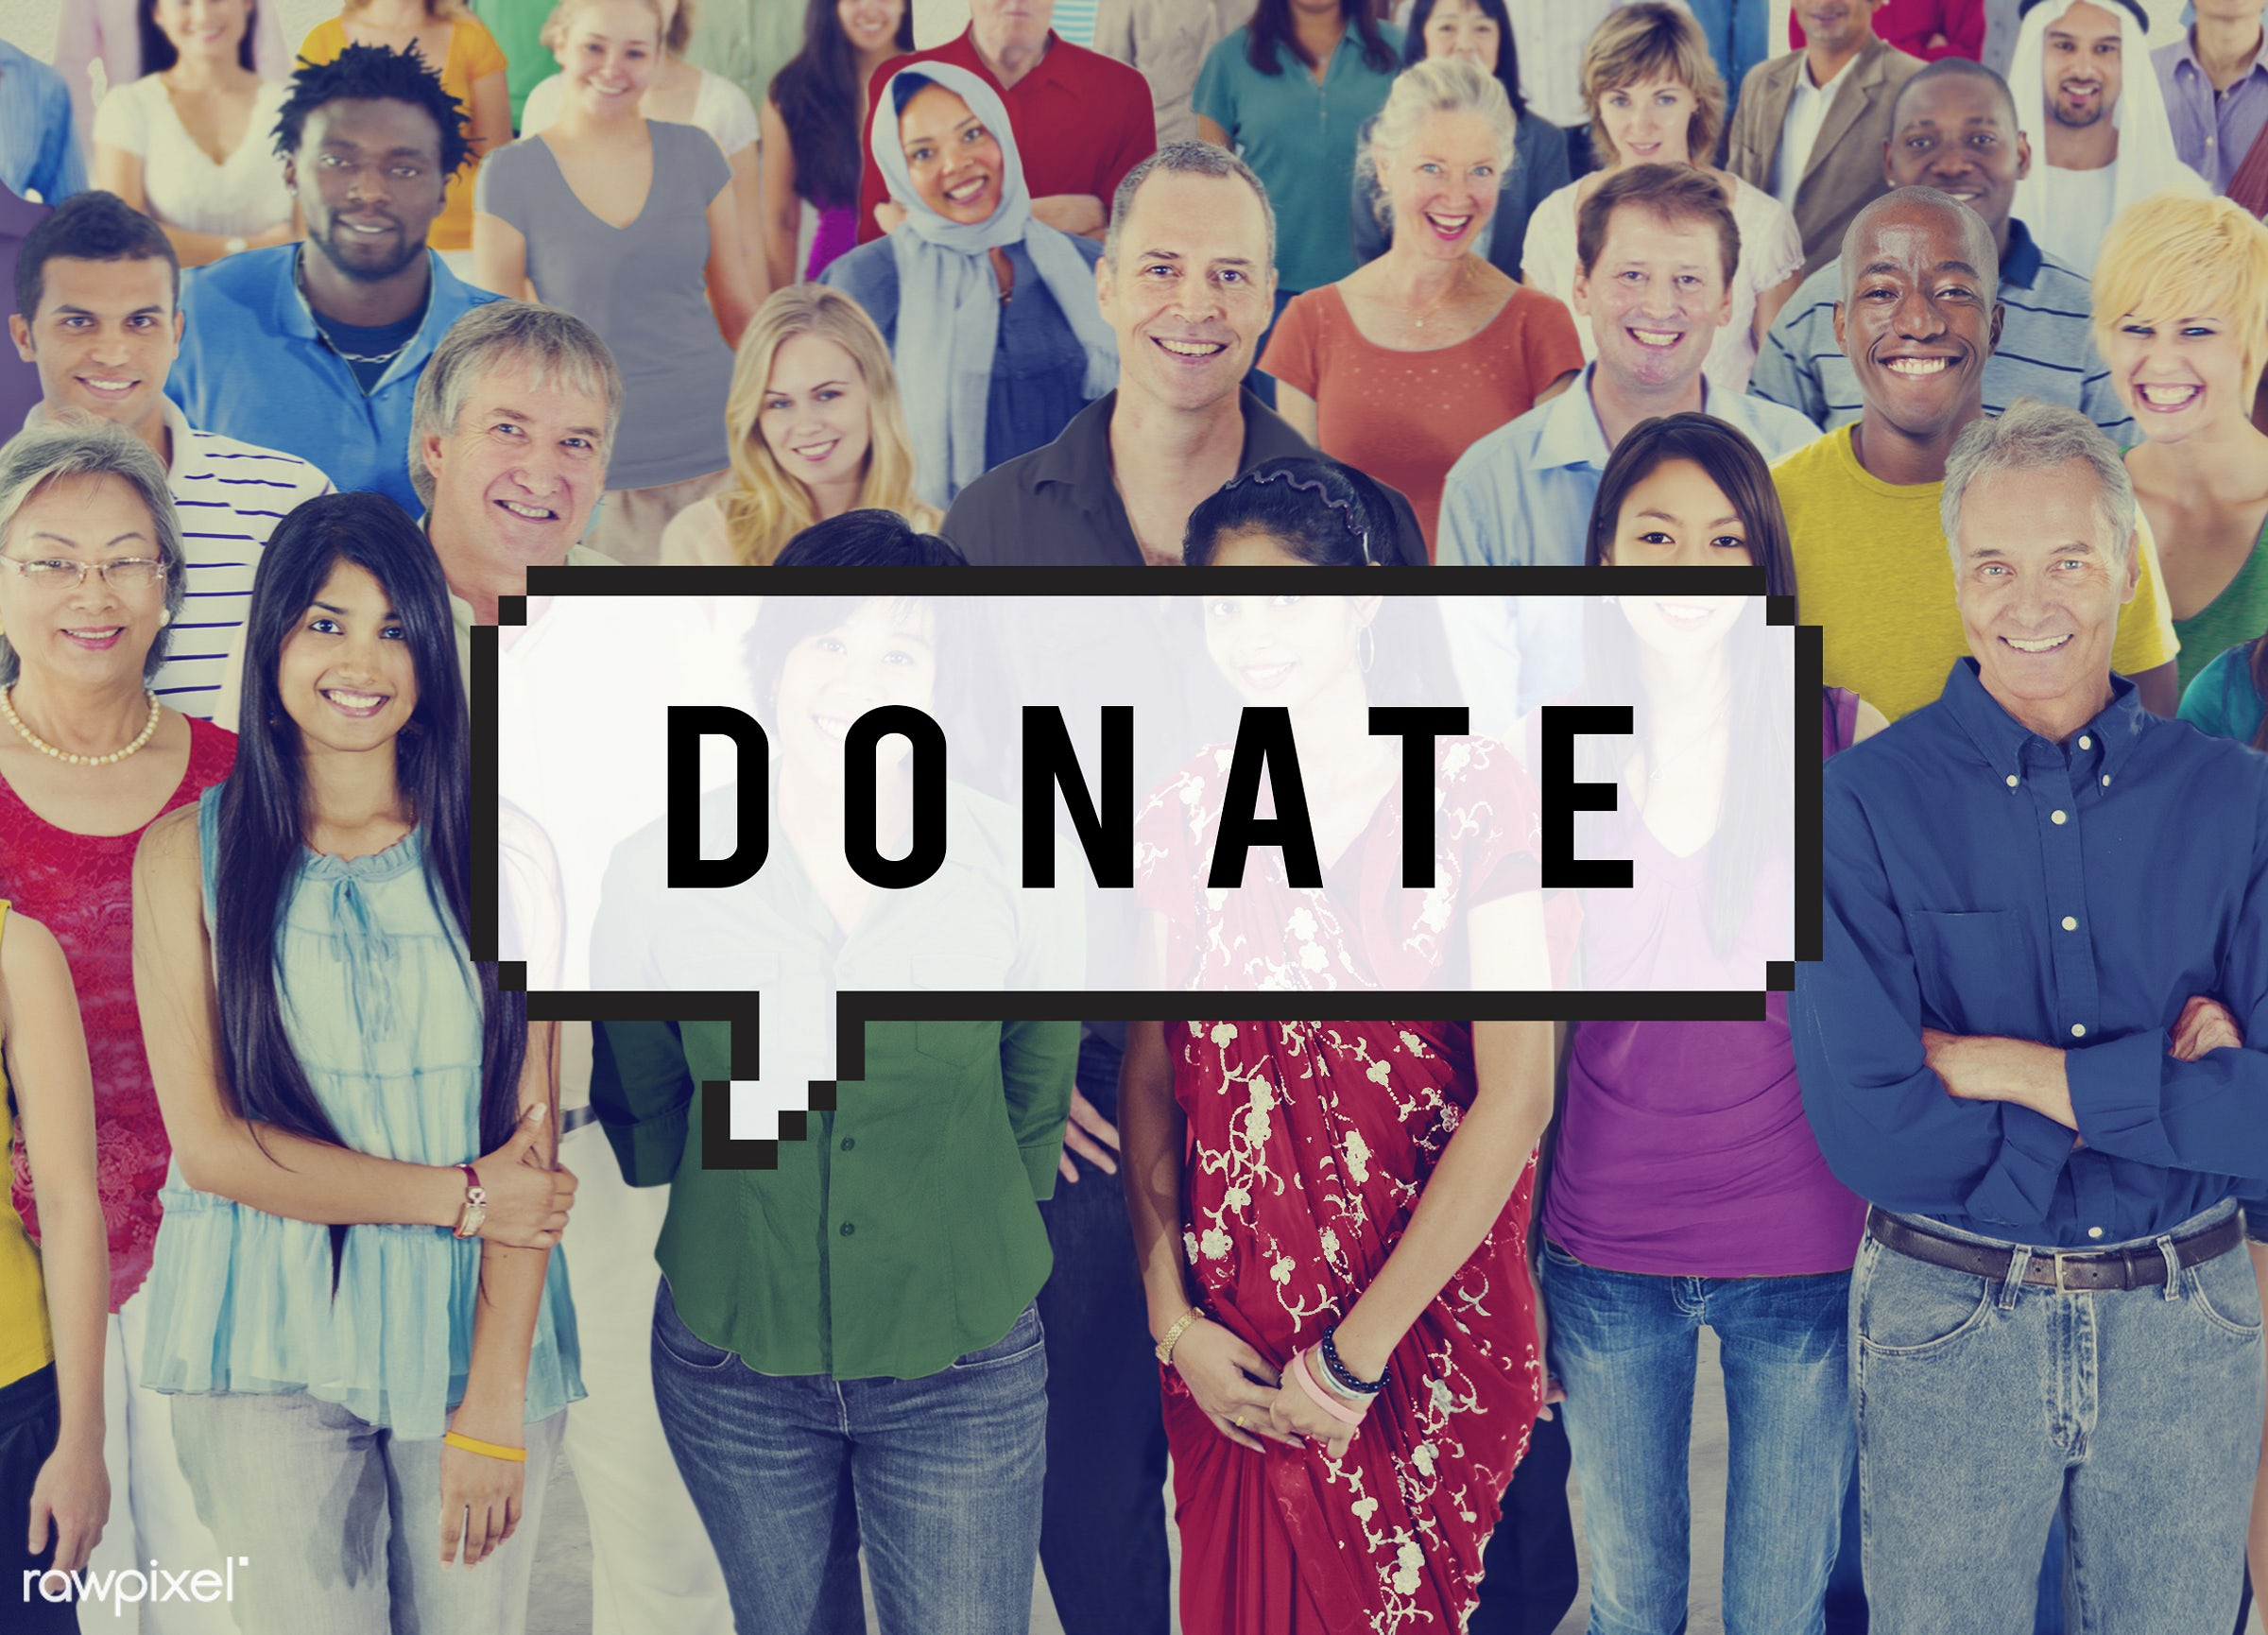 charity, help, volunteer, african, african descent, aid, asian ethnicity, blood donation, contribute, crowd, diverse,...